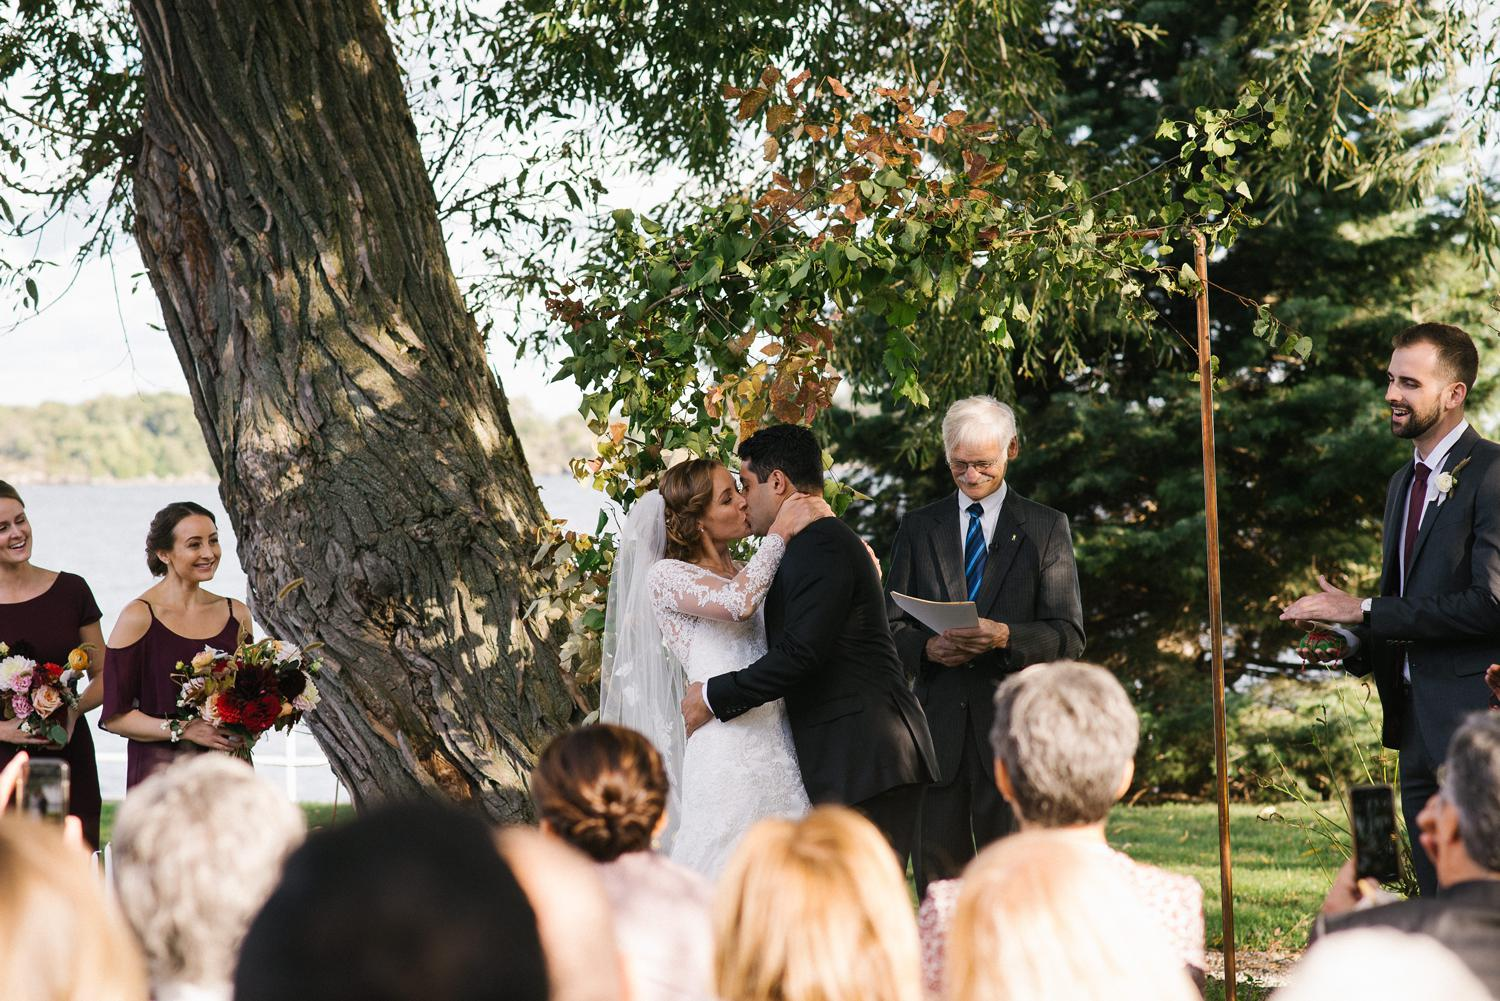 Ali___Steph_Wedding_394.jpg